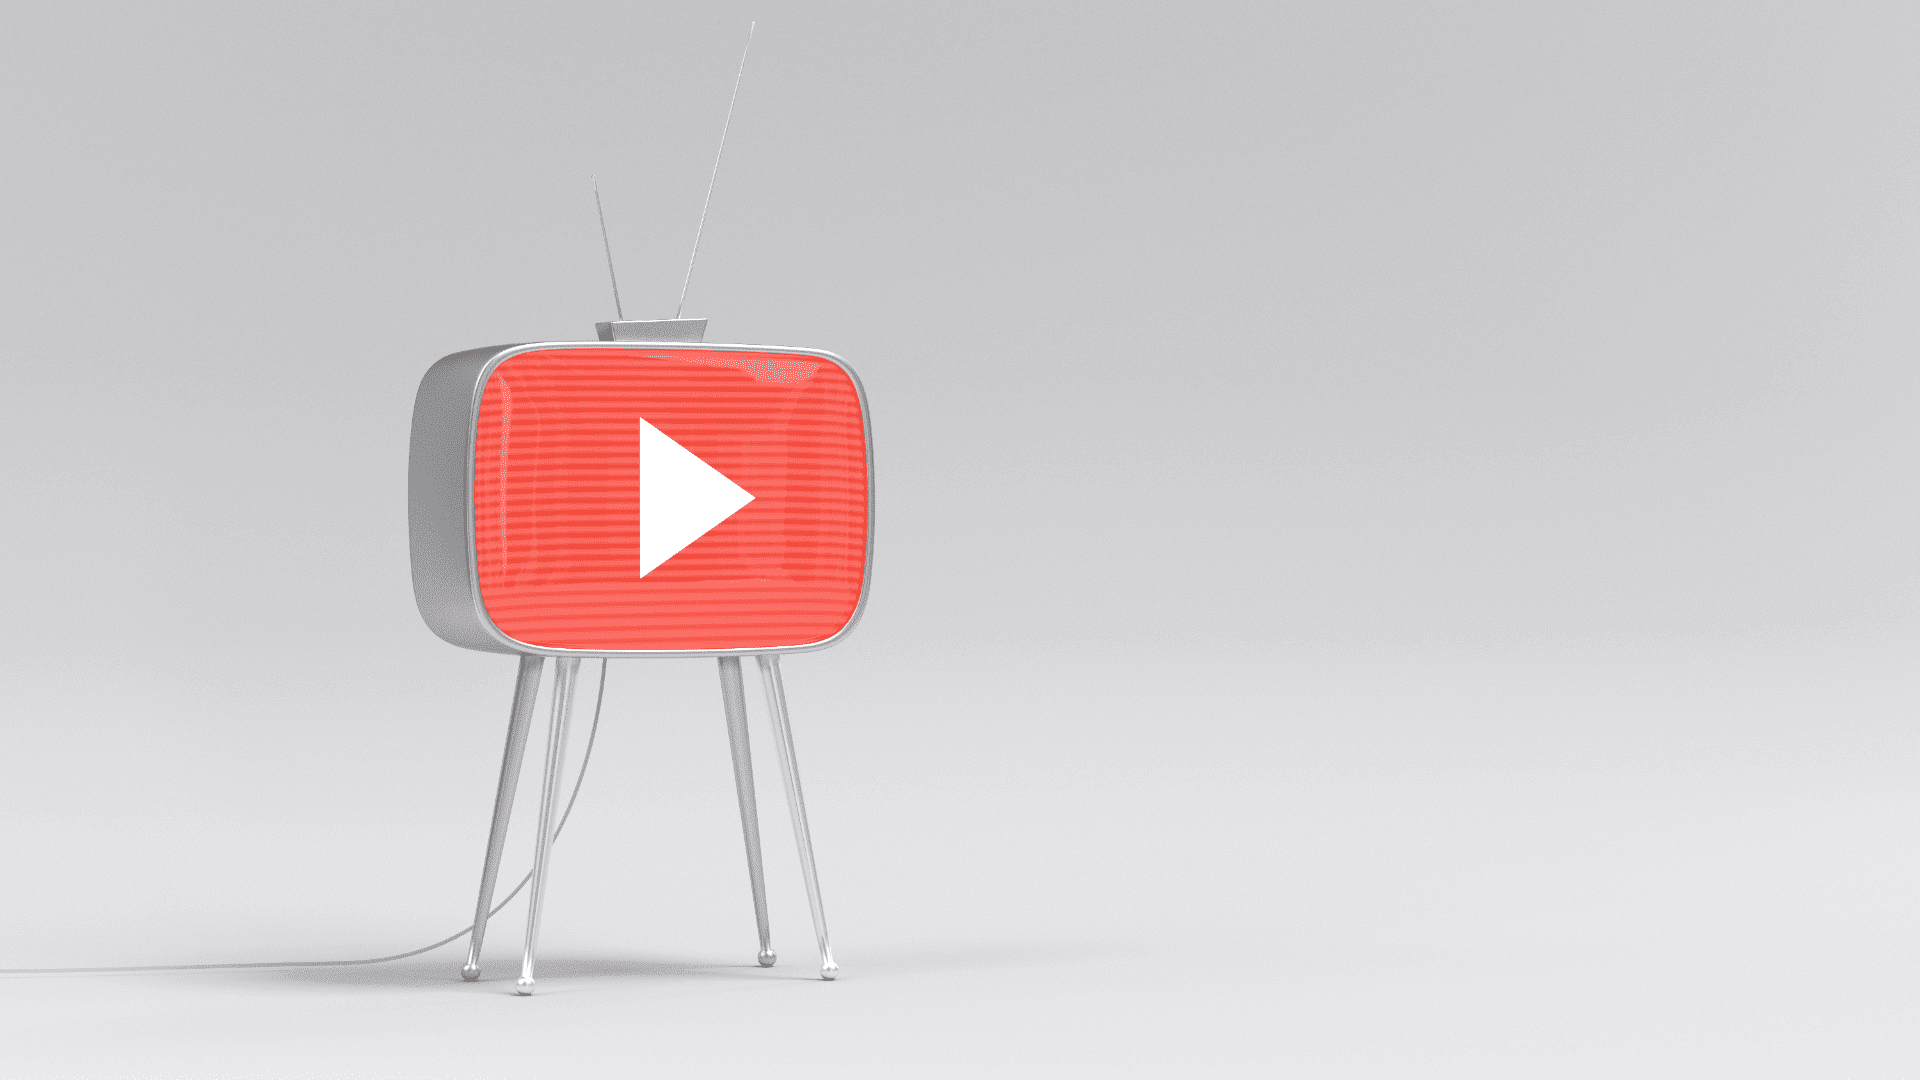 How to make a YouTube intro video